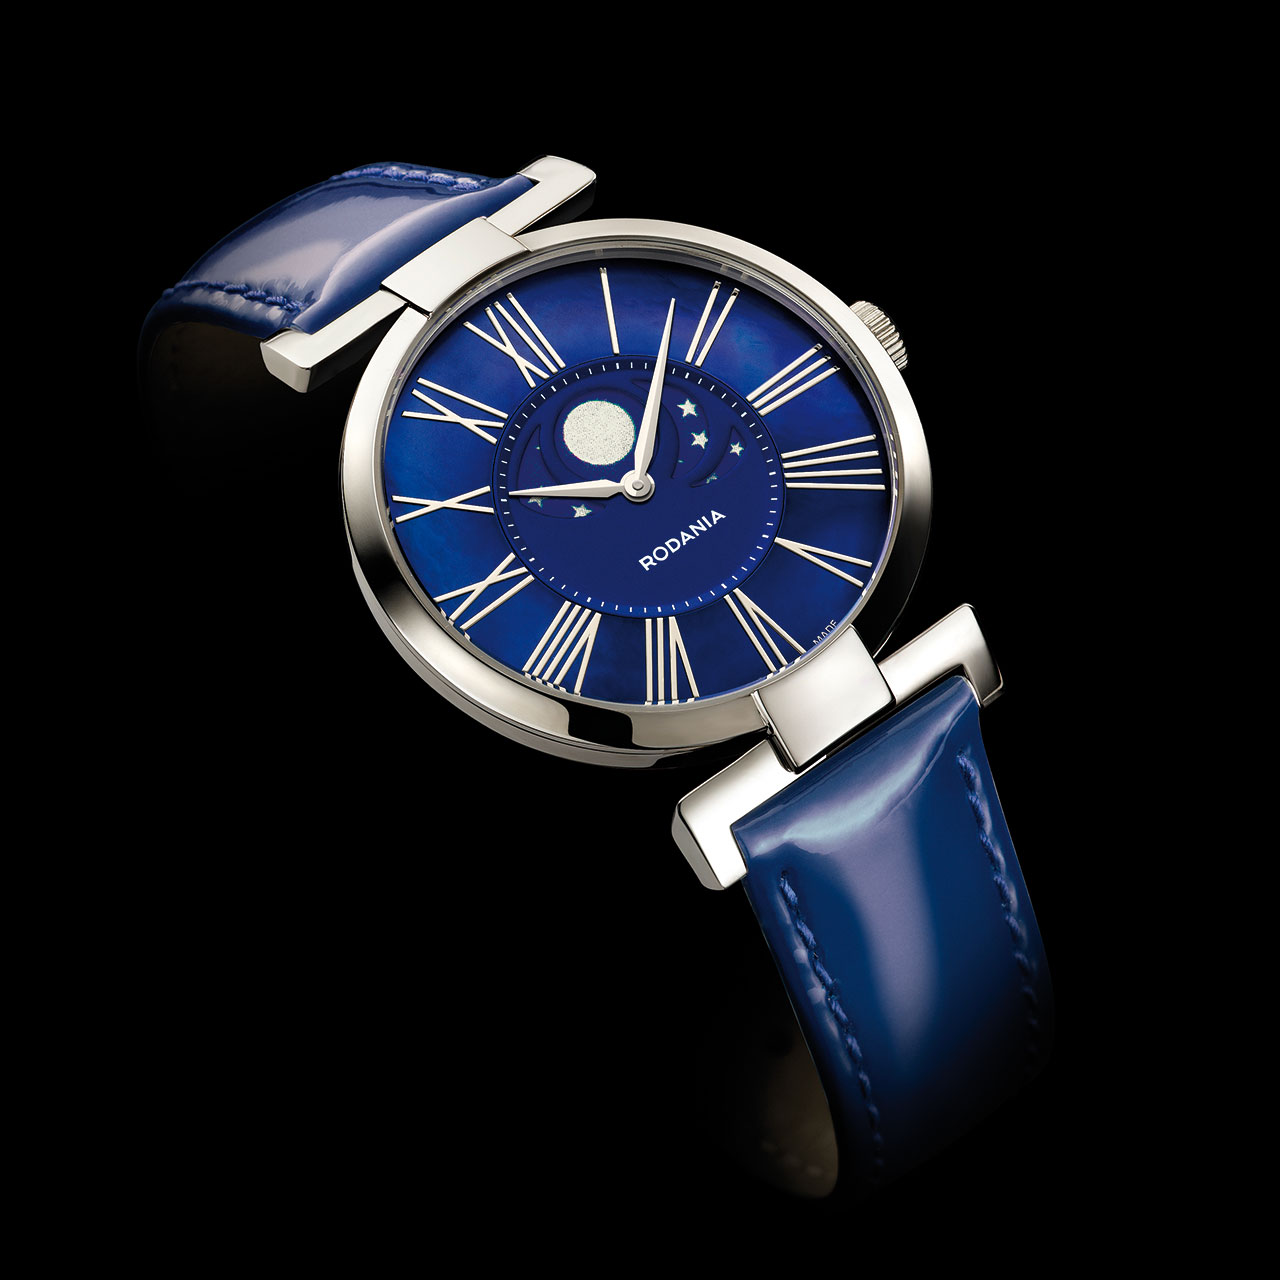 Rodania Tyara Moon Watch